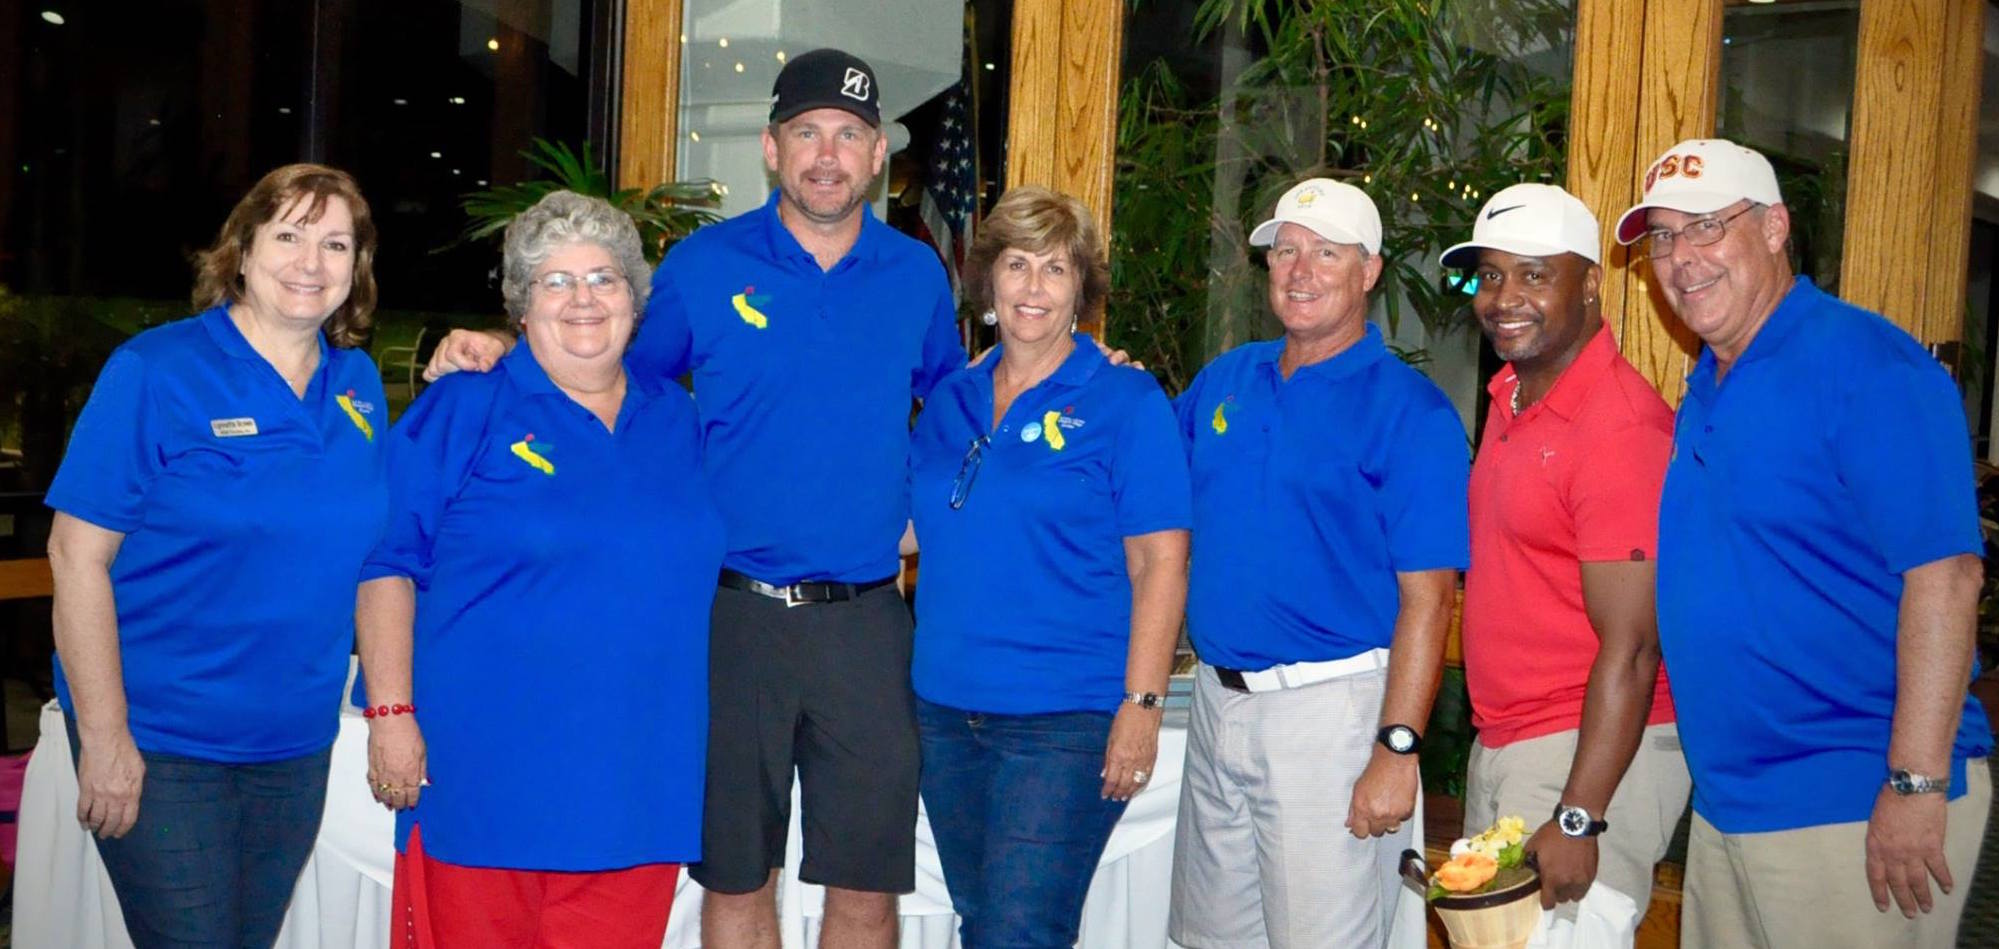 Organizers of the Southern California Charity Golf Classic - Lynnette Brown, Karon Mulligan, Zeb Welborn, Jan Edwards, Ron Capps, Dana Godfrey. Also pictured is Mel Austin.